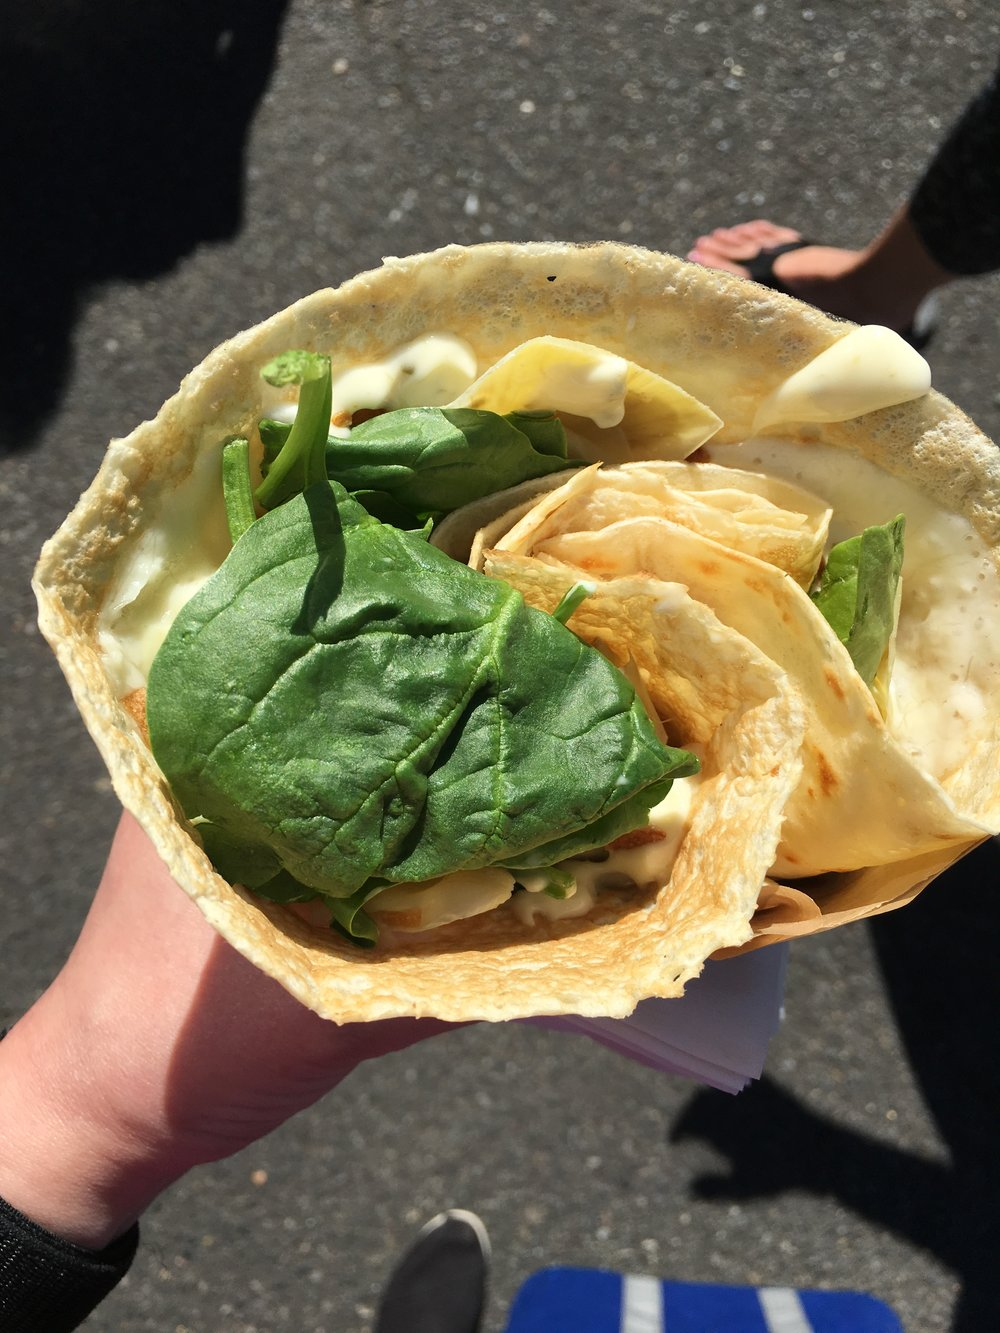 I had a day date with my sister on Sunday. Yoga class then crepes from the farmers market. This one had artichokes, spinach, crispy shallots, and some sort of delicious creamy sauce.